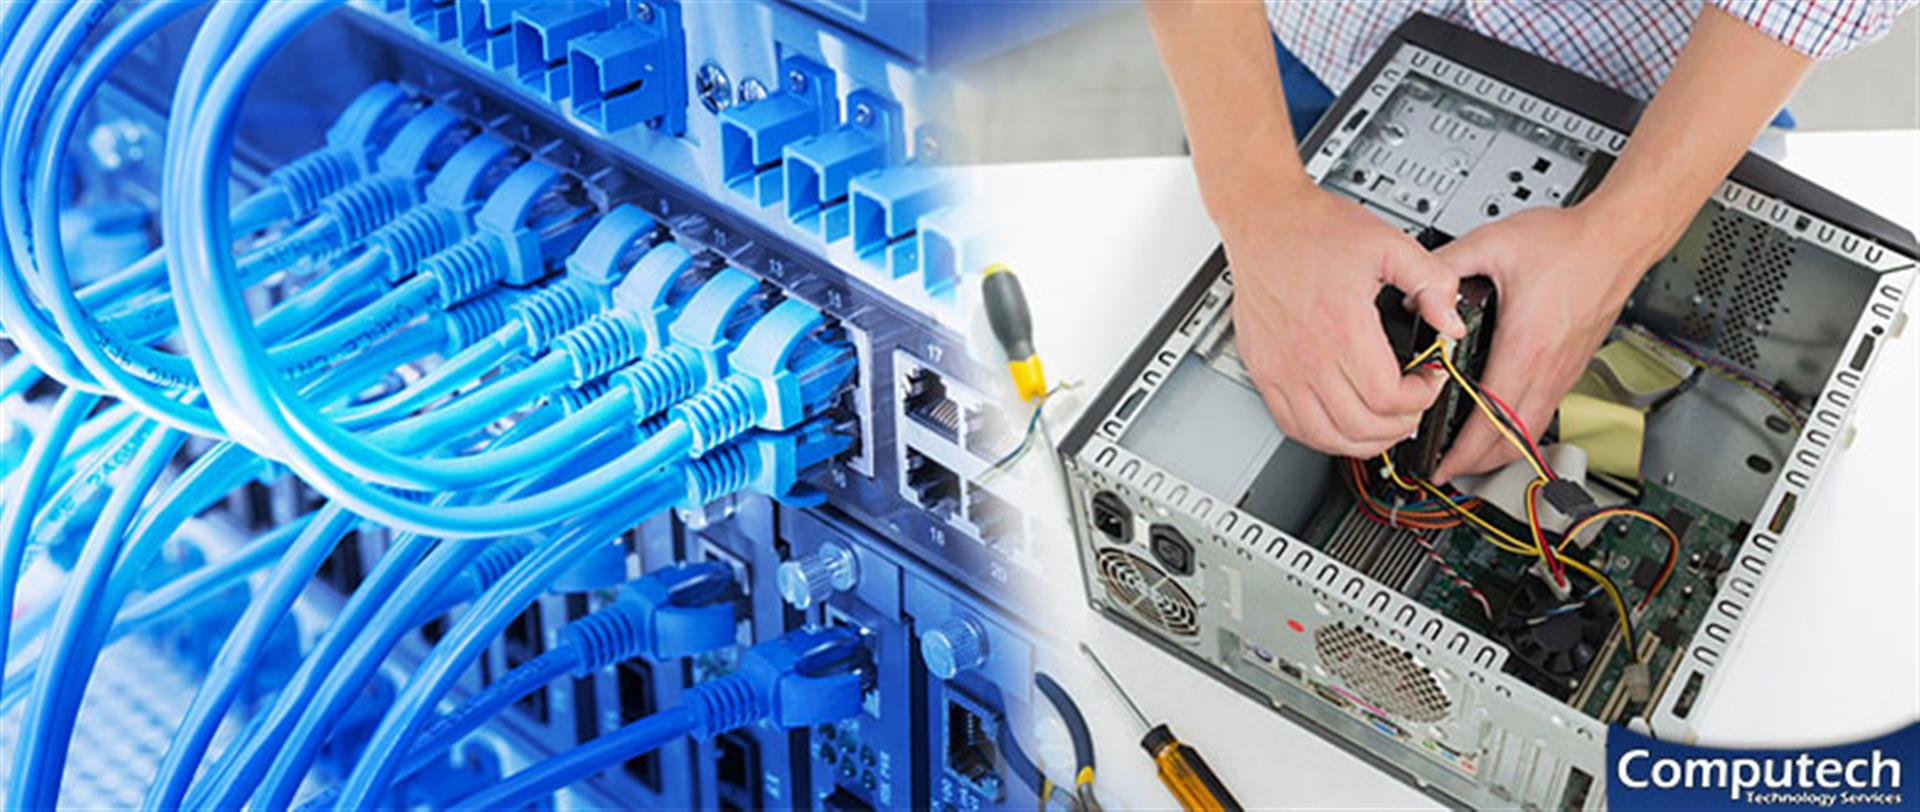 Cookeville Tennessee On-Site Computer PC and Printer Repair, Networking, Voice & Data Cabling Services